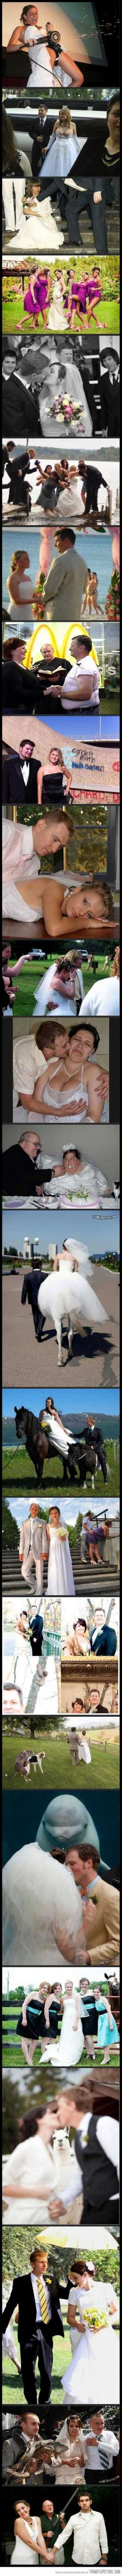 Awkward Wedding Pictures…: Awkward Wedding, Giggle, Wedding Photos, Funny Wedding, Wedding Pictures, So Funny